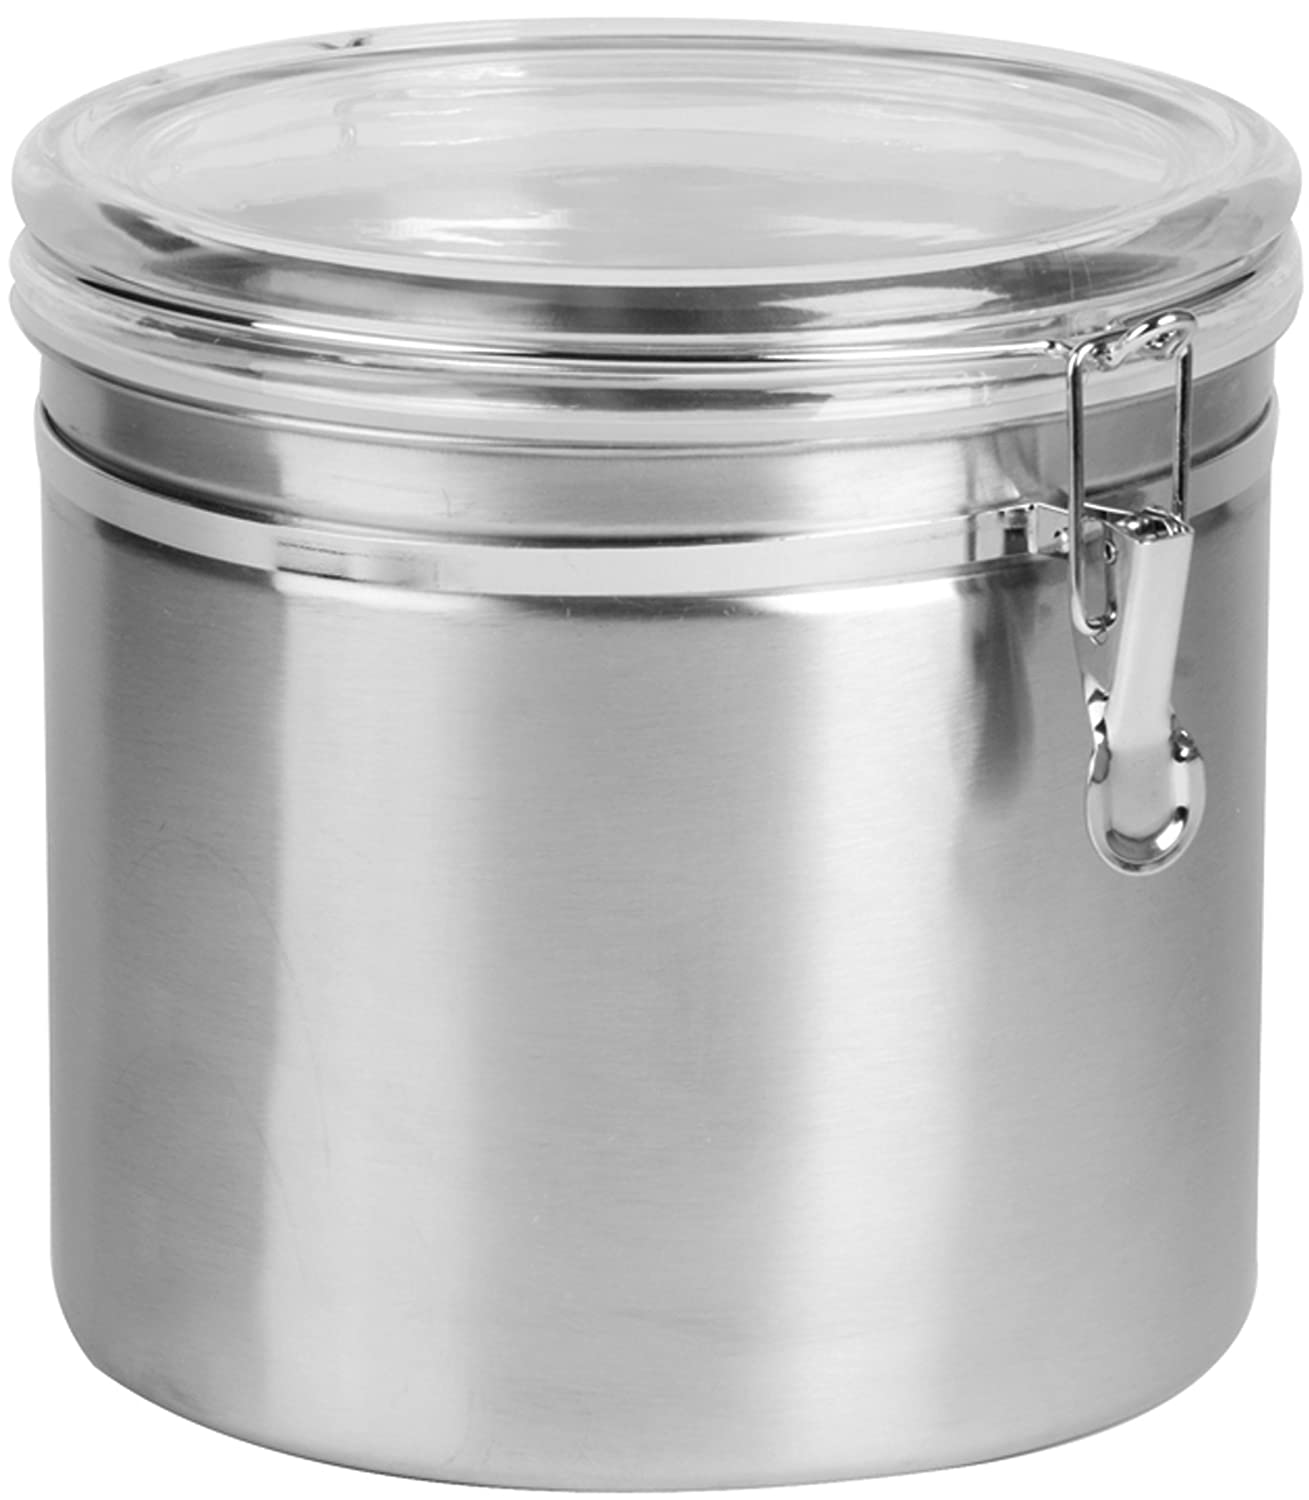 amazon com anchor hocking round stainless steel airtight canister amazon com anchor hocking round stainless steel airtight canister with clear acrylic lid and locking clamp 165 oz set of 2 food savers kitchen